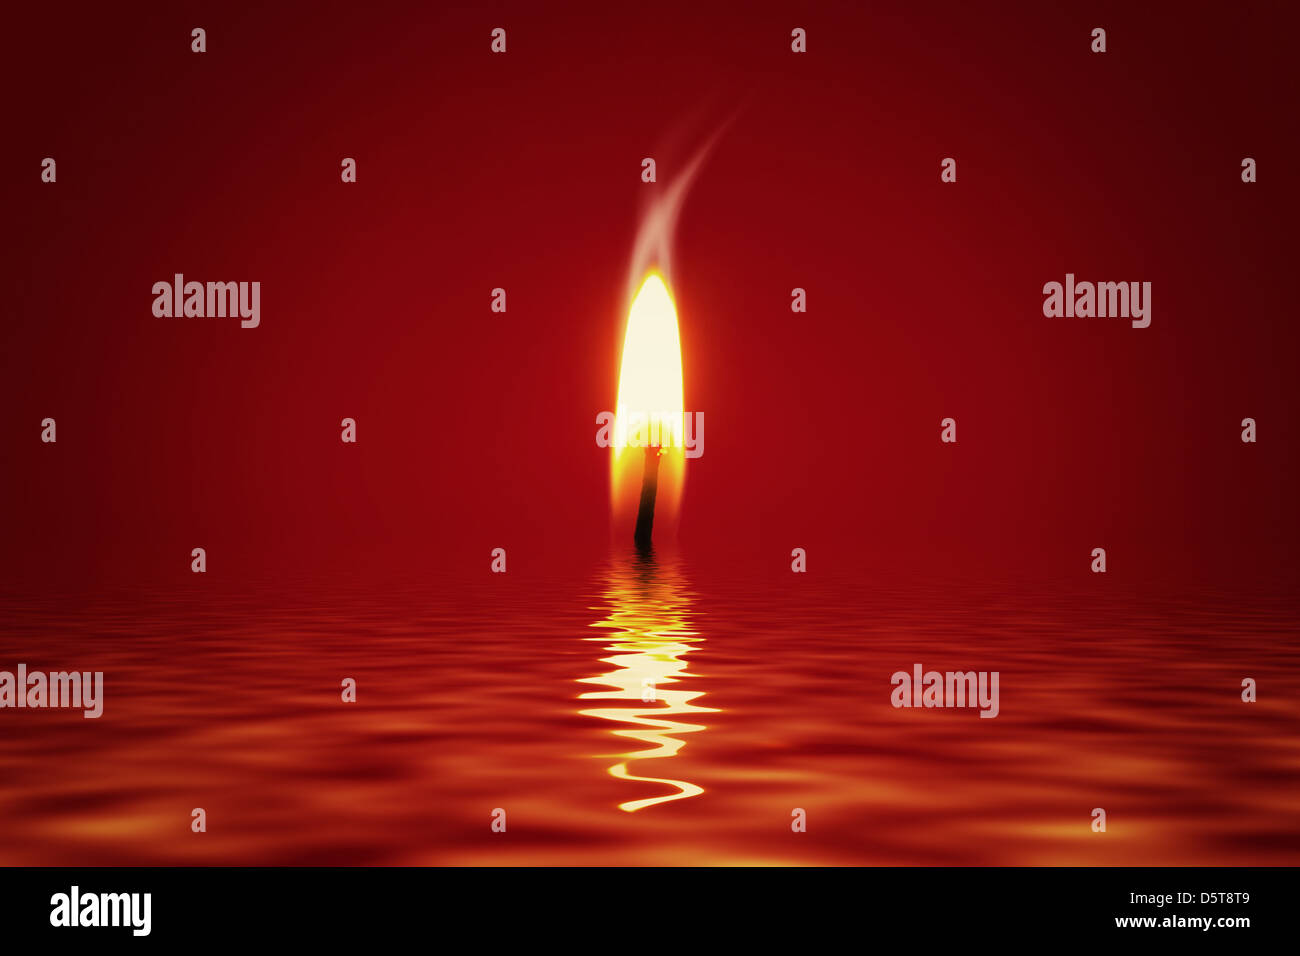 Candlelight in Water - Stock Image